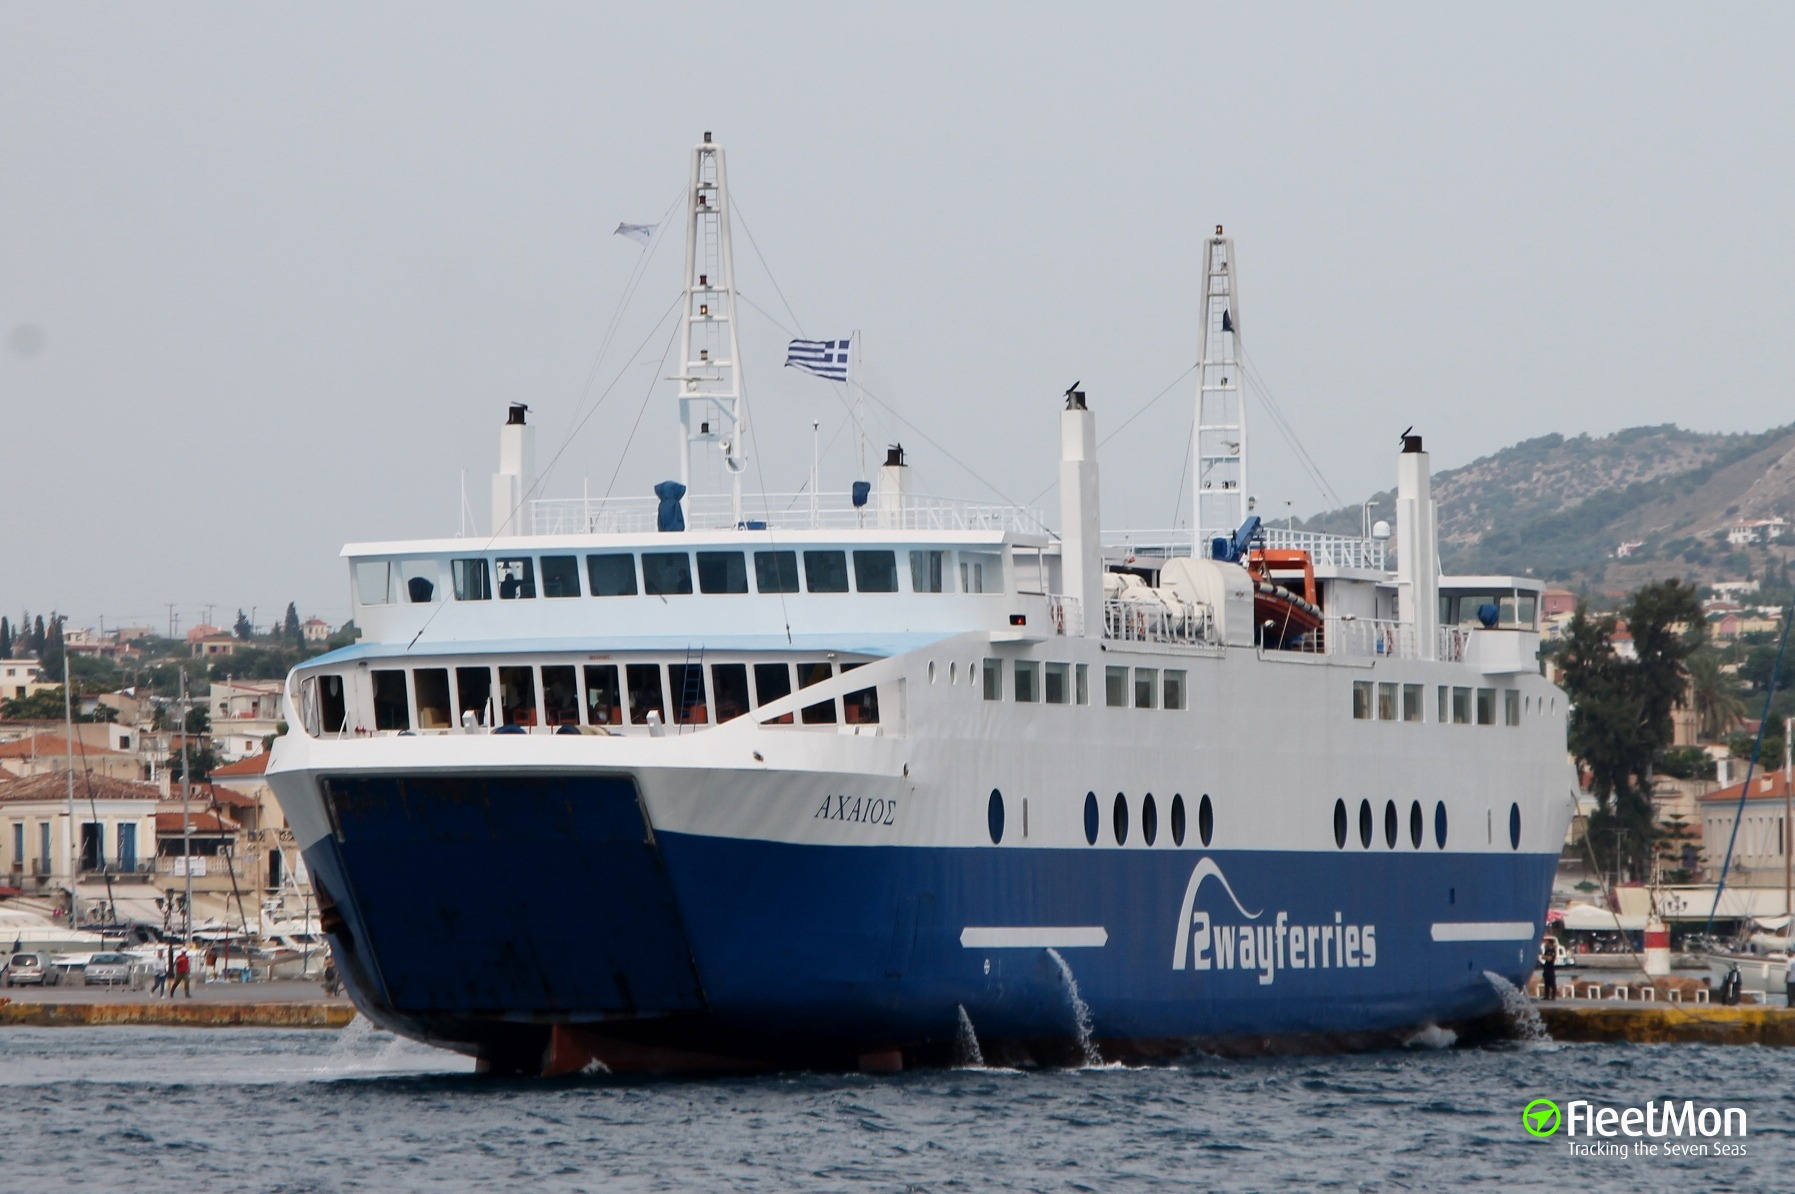 Ferry ACHAEOS troubled, Greece